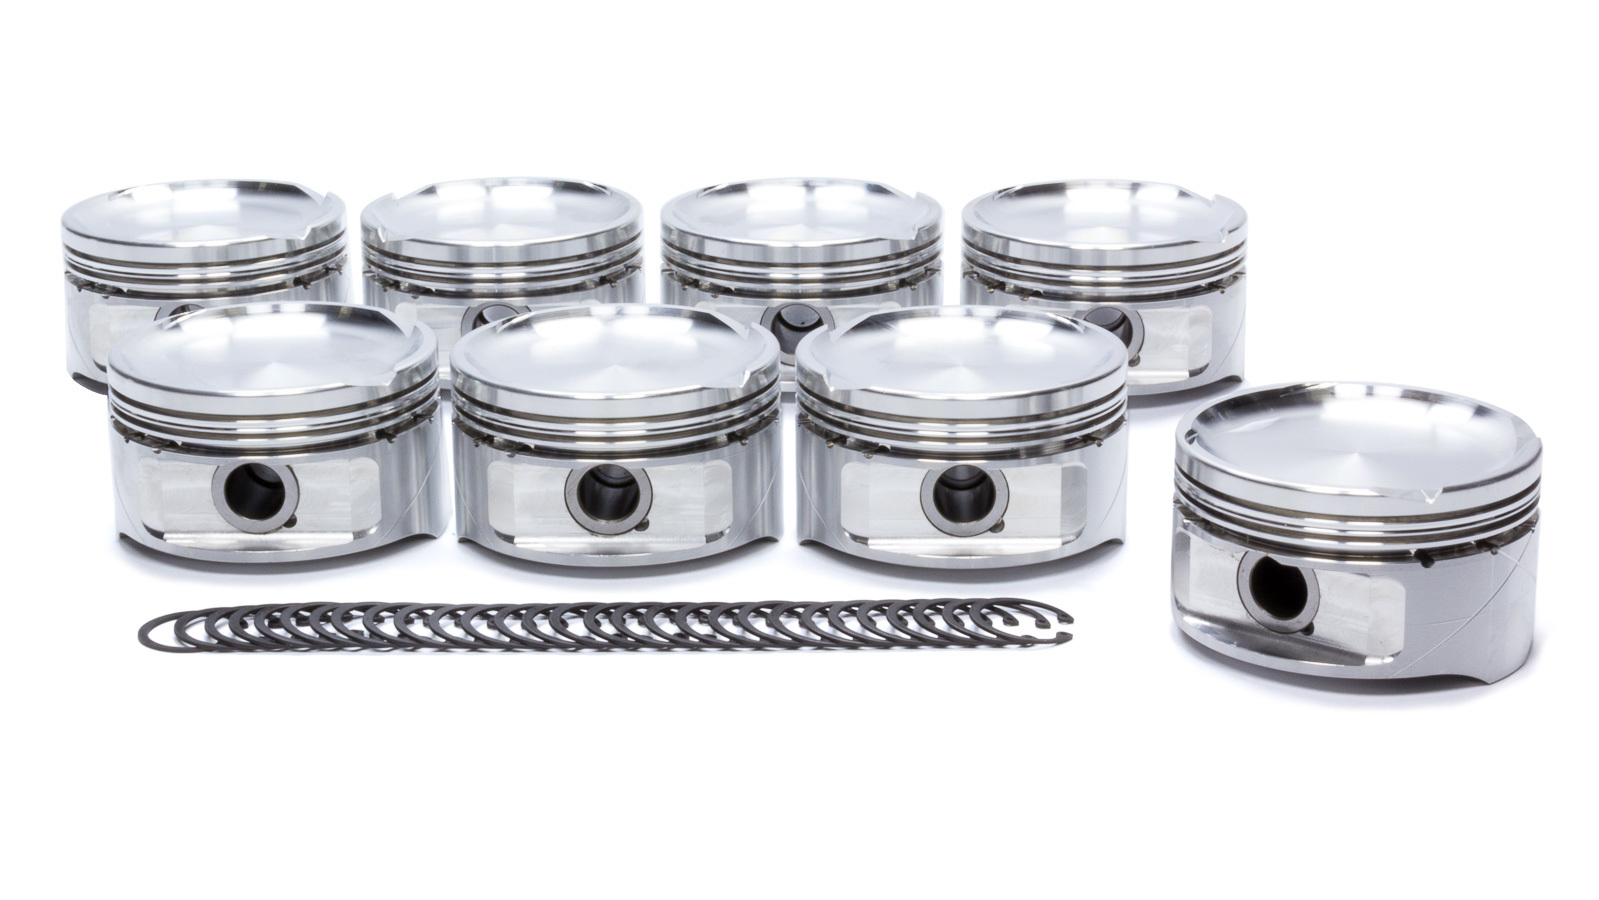 DSS Racing 4866X-3572 Piston, GSX-R Series, Forged, 3.572 in Bore, 1.5 x 1.5 x 3.0 mm Ring Grooves, Minus 24.0 cc, Ford Modular, Set of 8